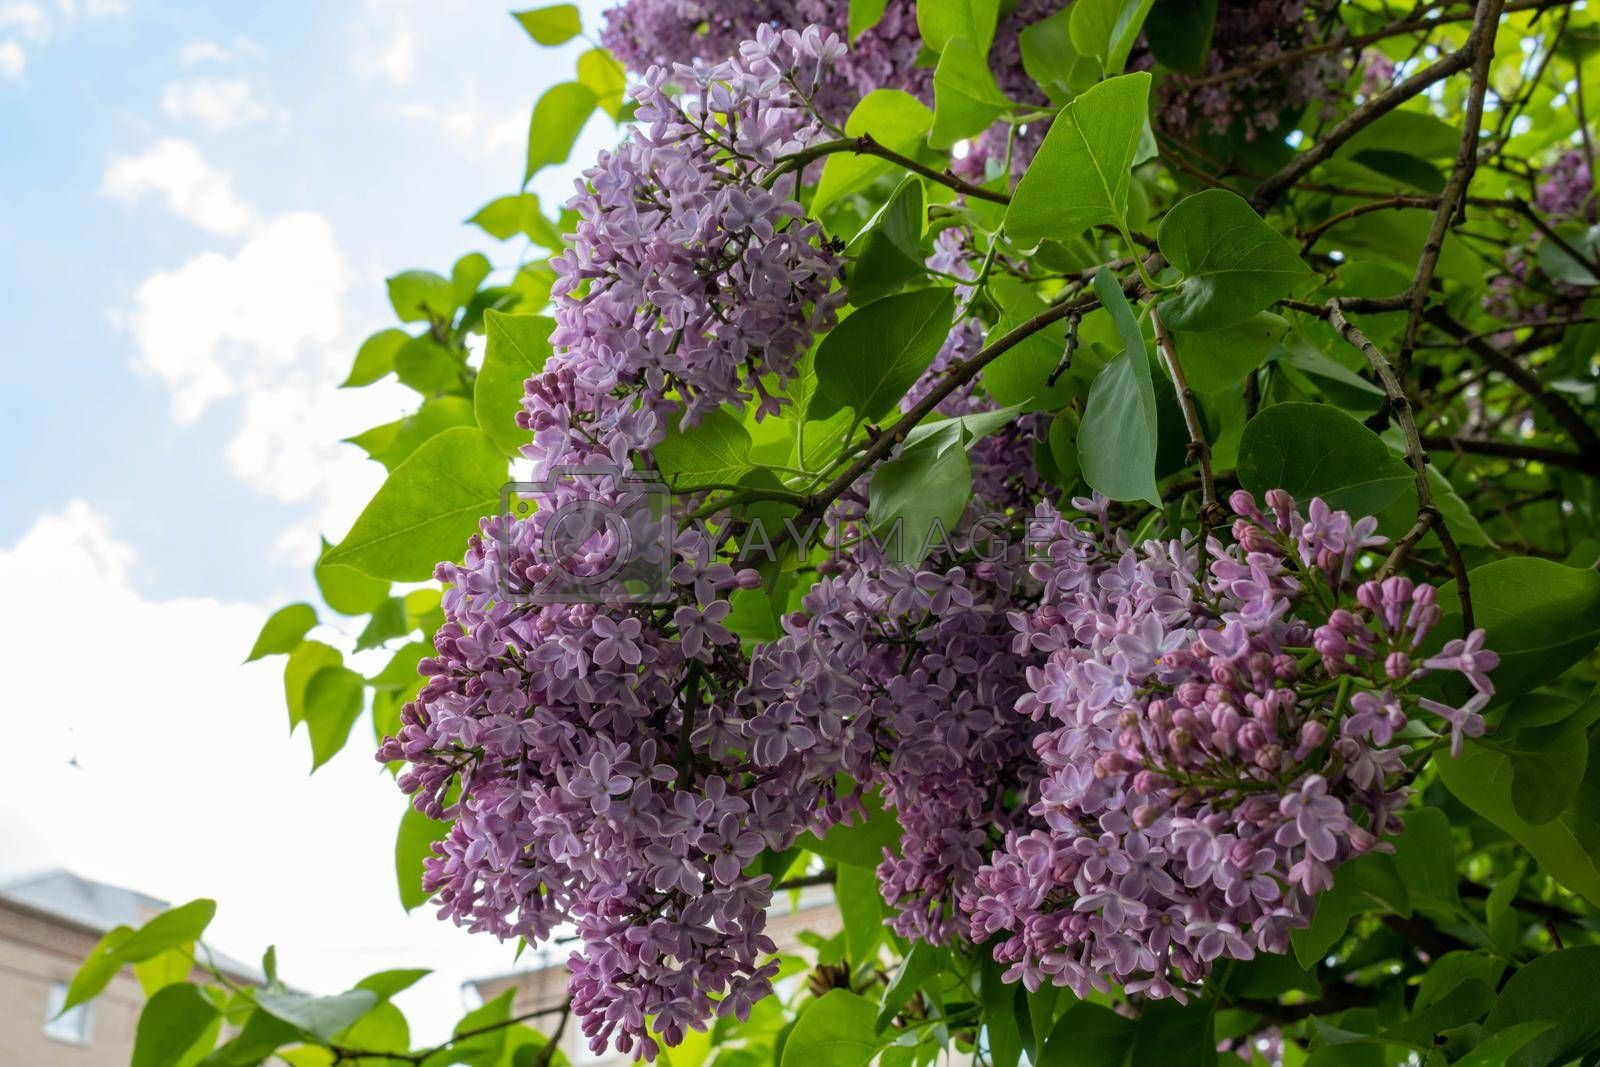 Blooming lilac against the sky. Beautiful purple lilac flowers outdoors. Lilac flowers on the branches. by lapushka62